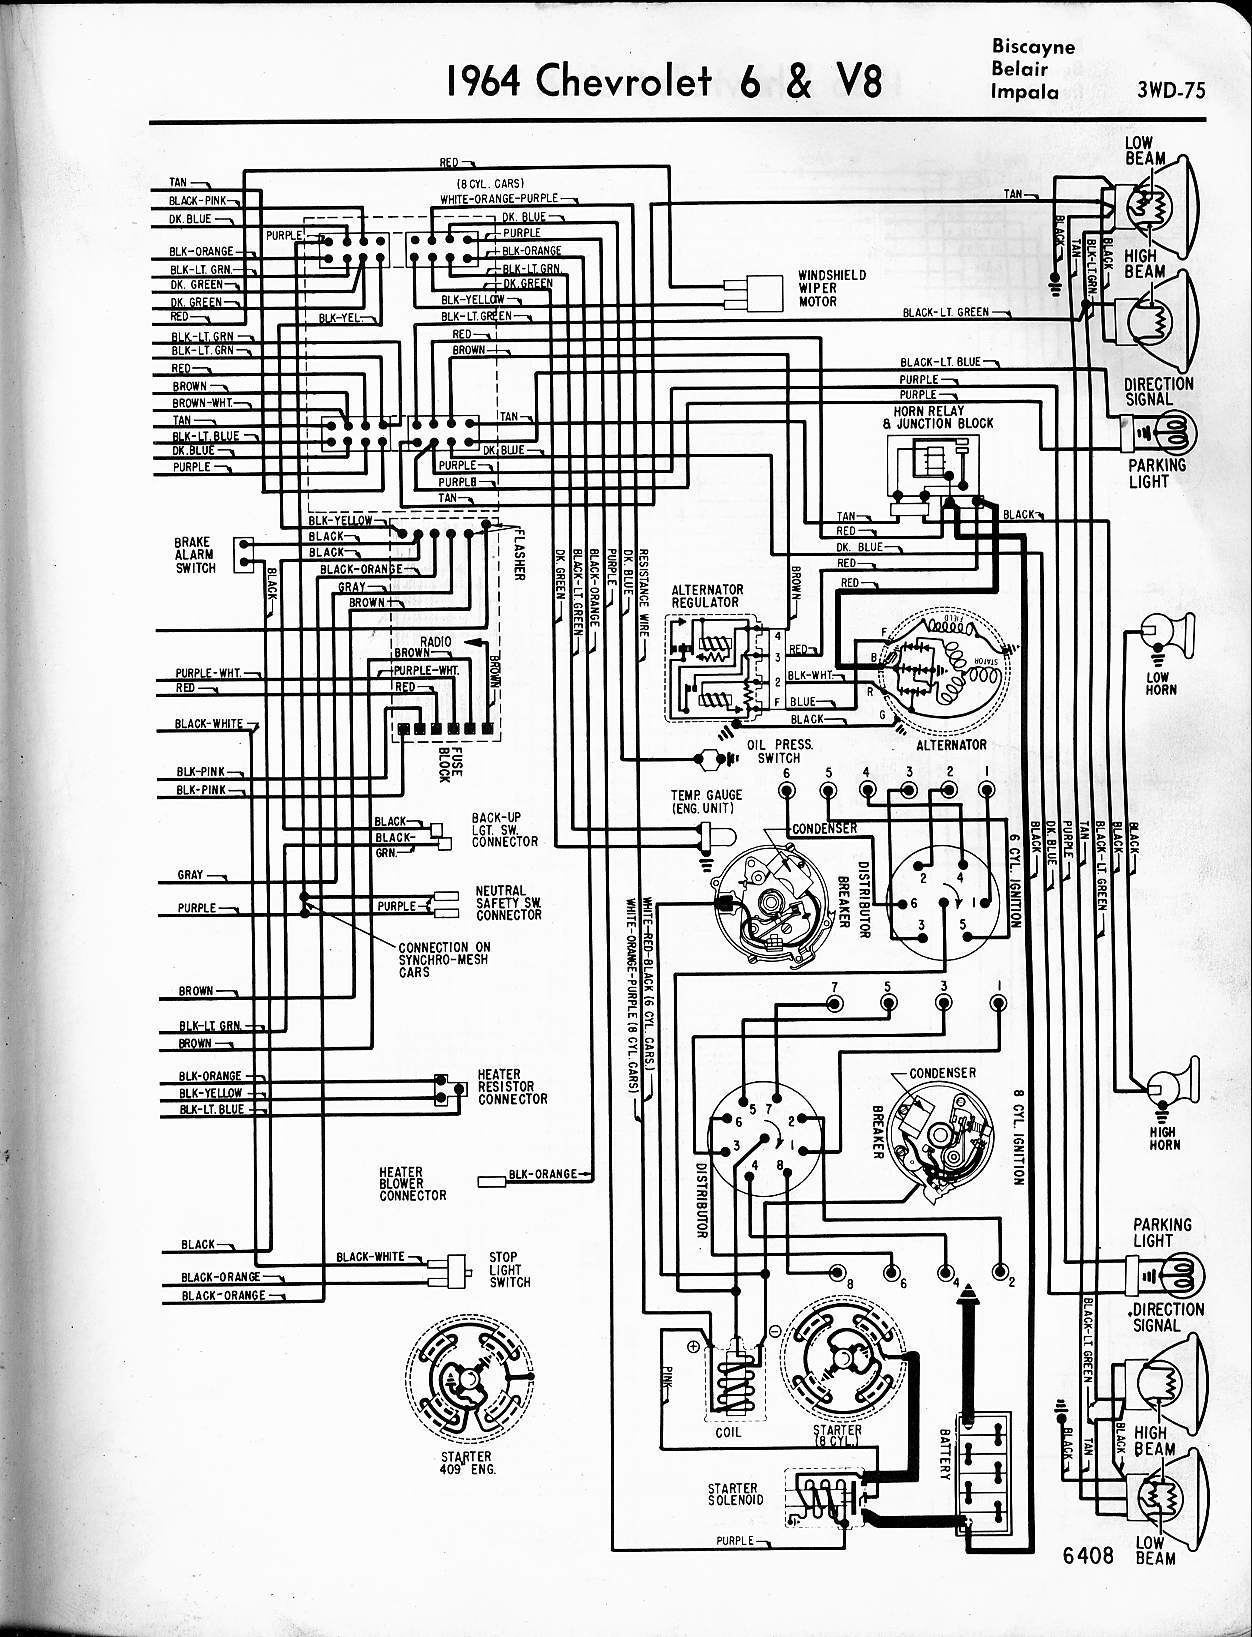 64 impala alternator wiring diagram 64 wiring diagrams online description 64 c10 wiring diagram nilza net on 64 impala tail light wiring diagram